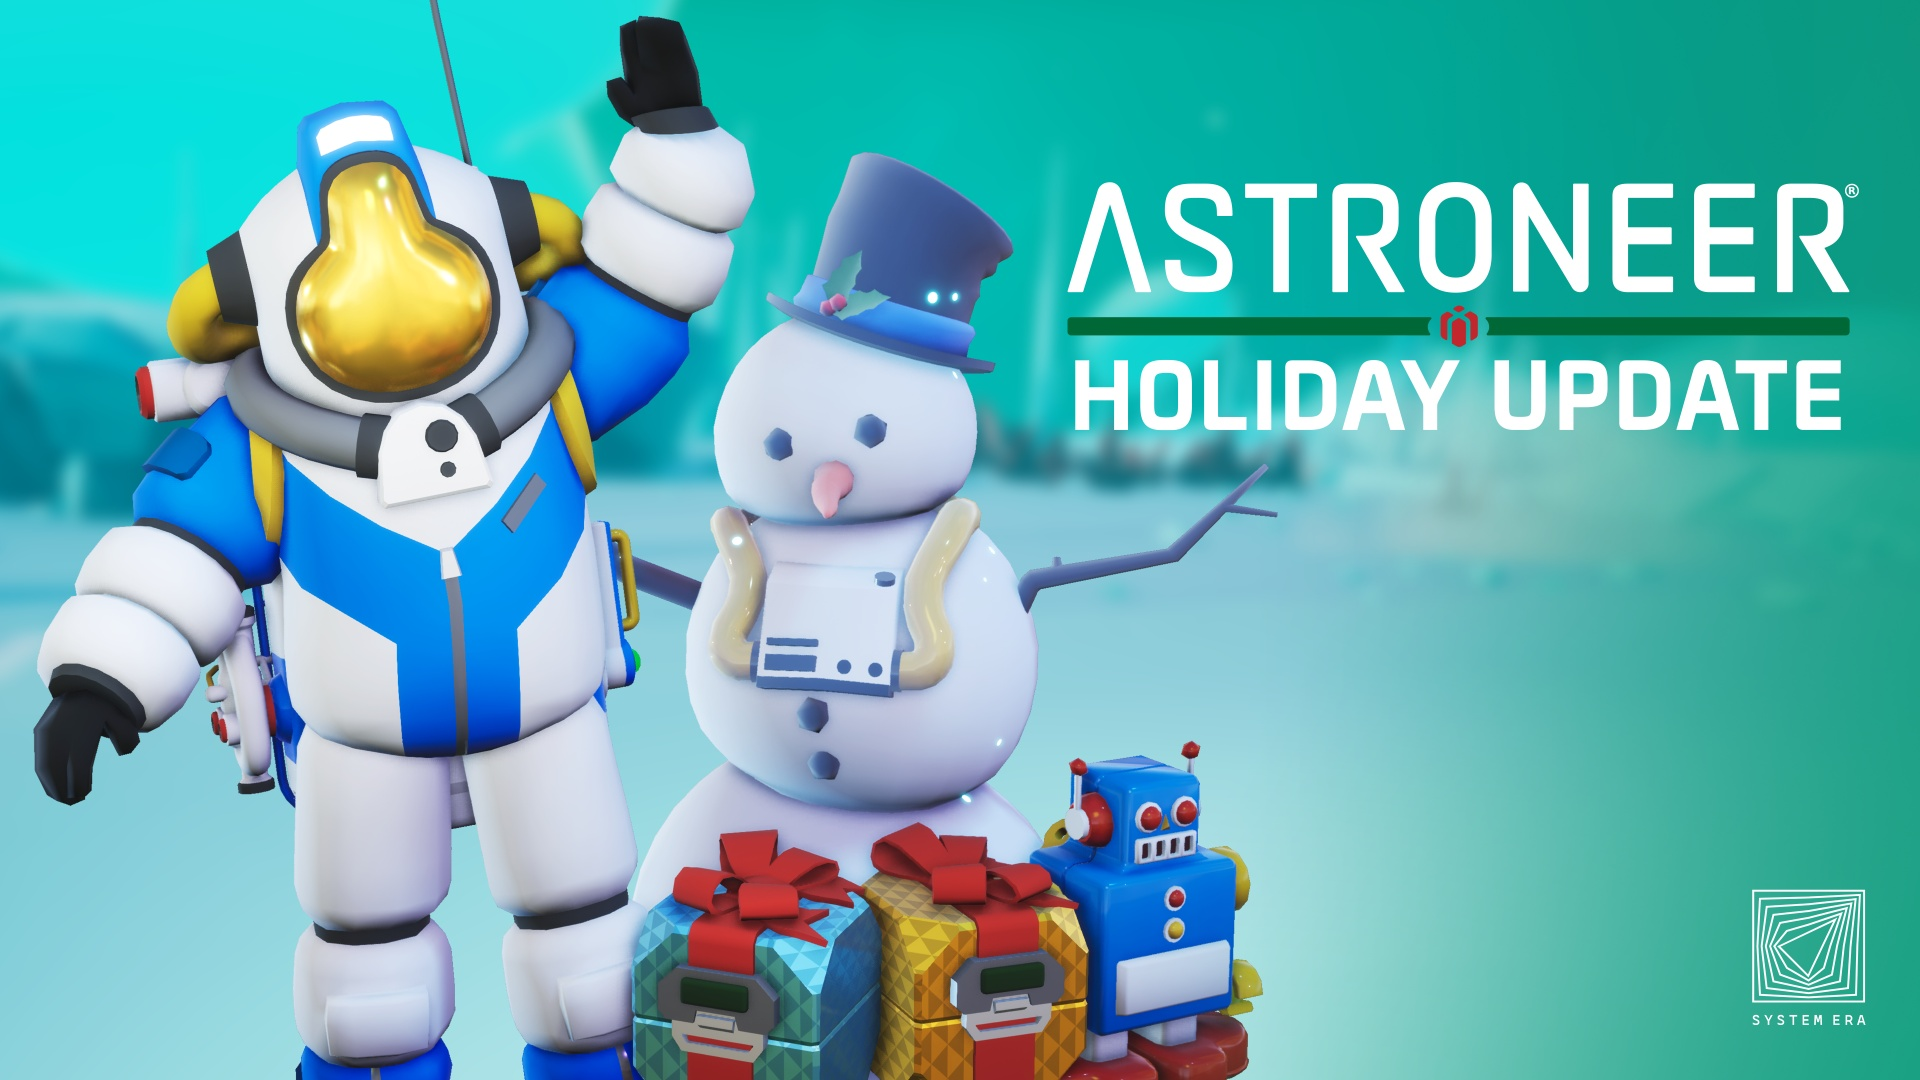 Astroneer - Holiday Update 002 | System Era Softworks